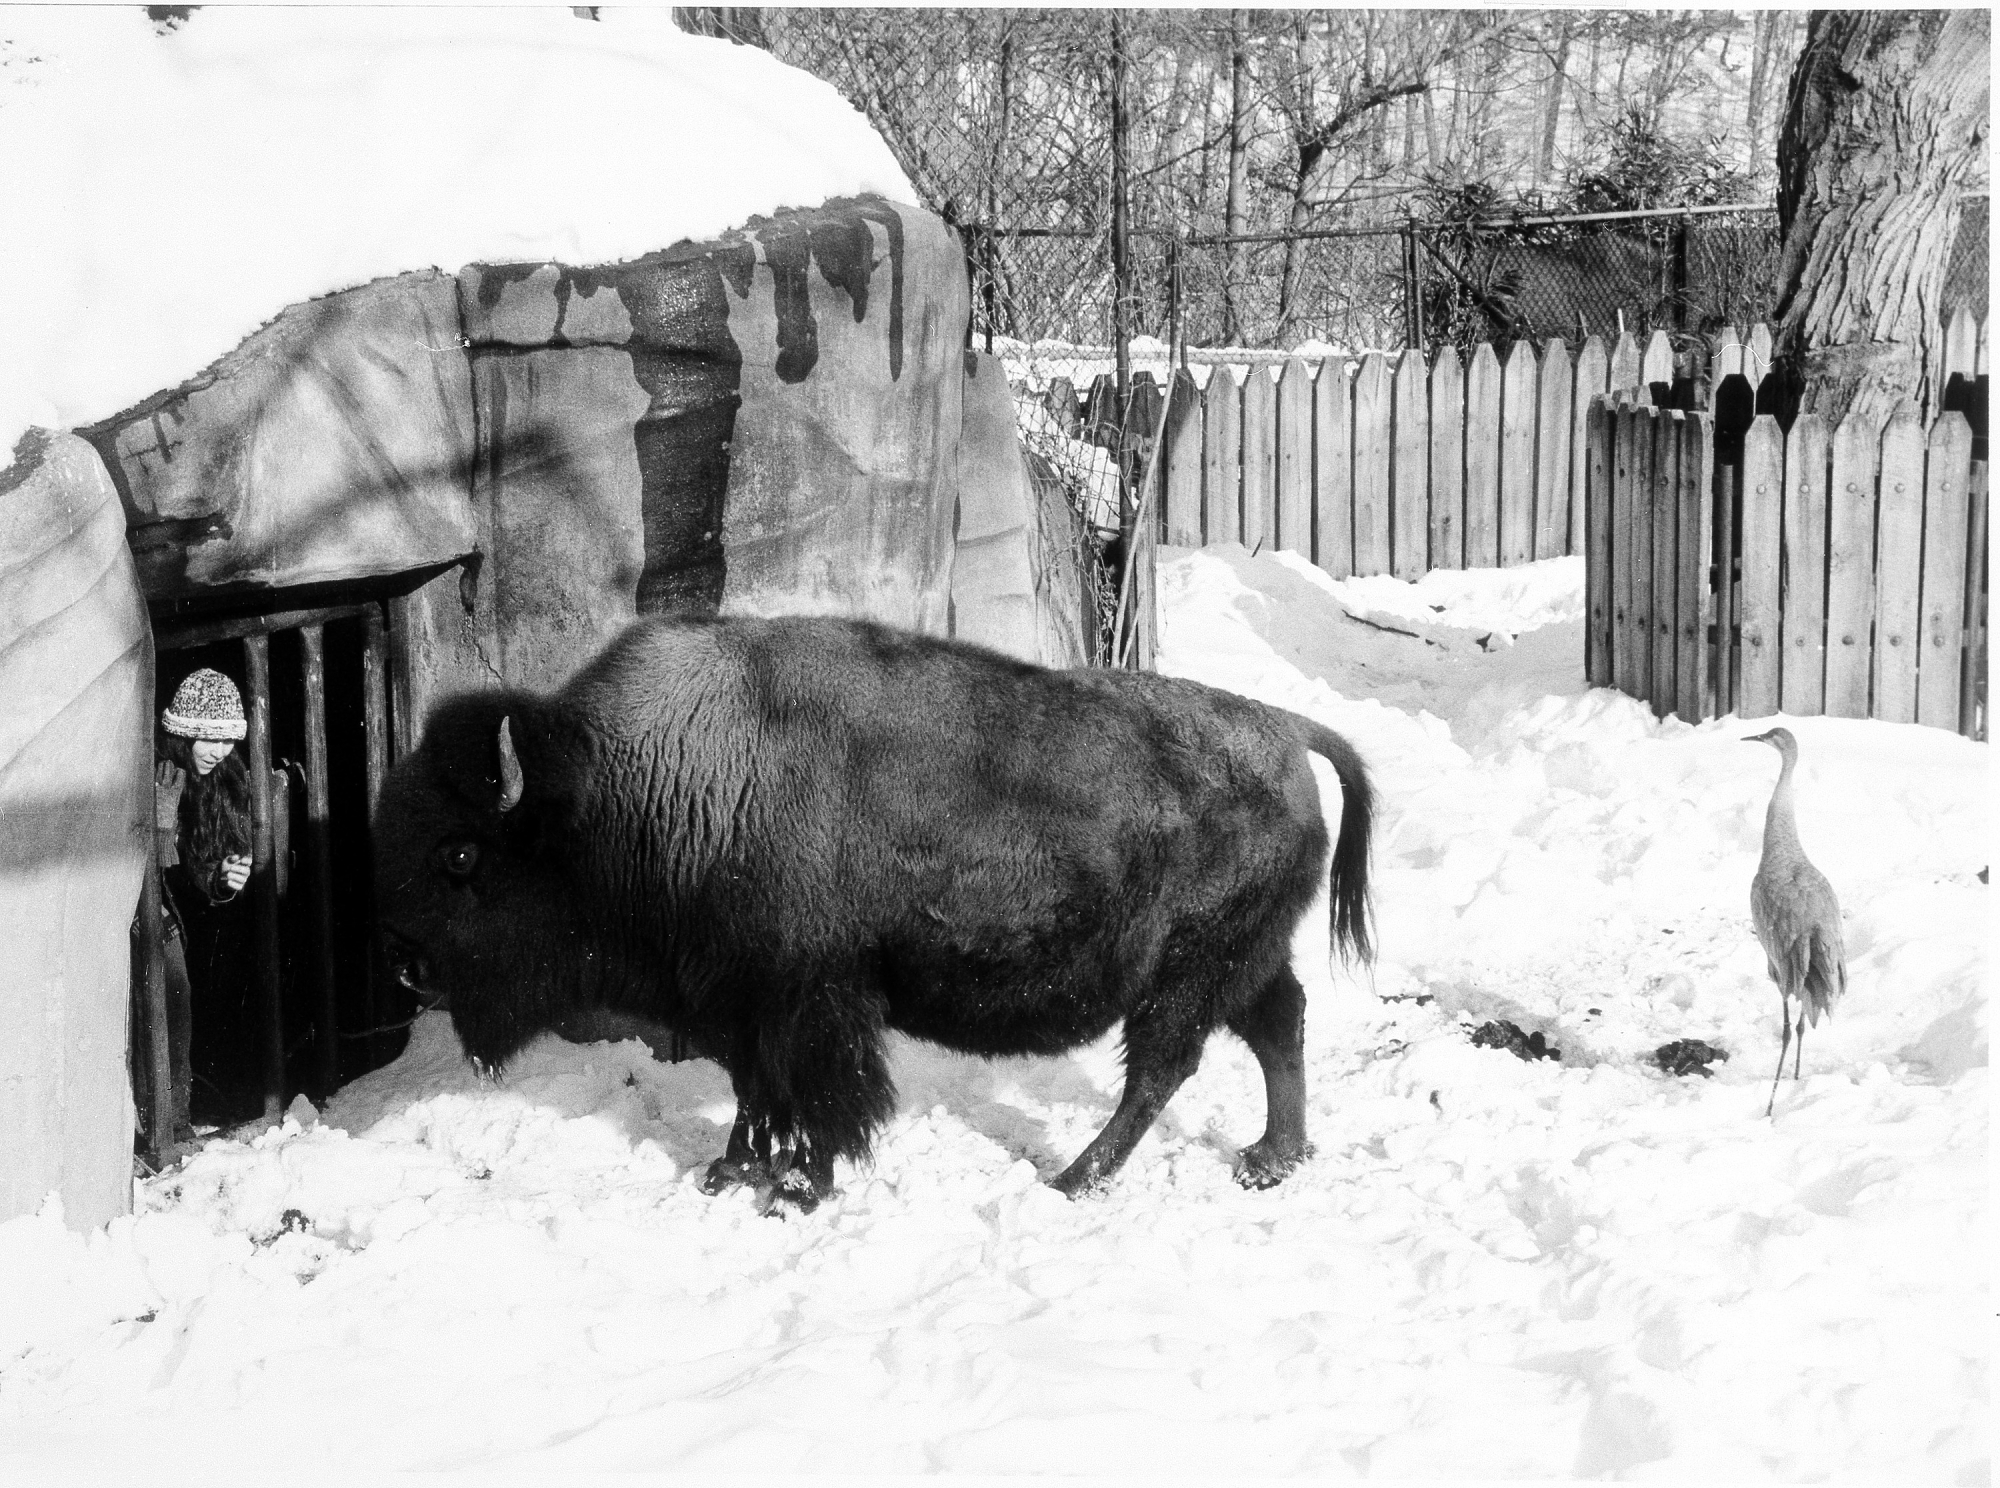 A National Zoo keeper feeding a bison after a snow storm, 1987.